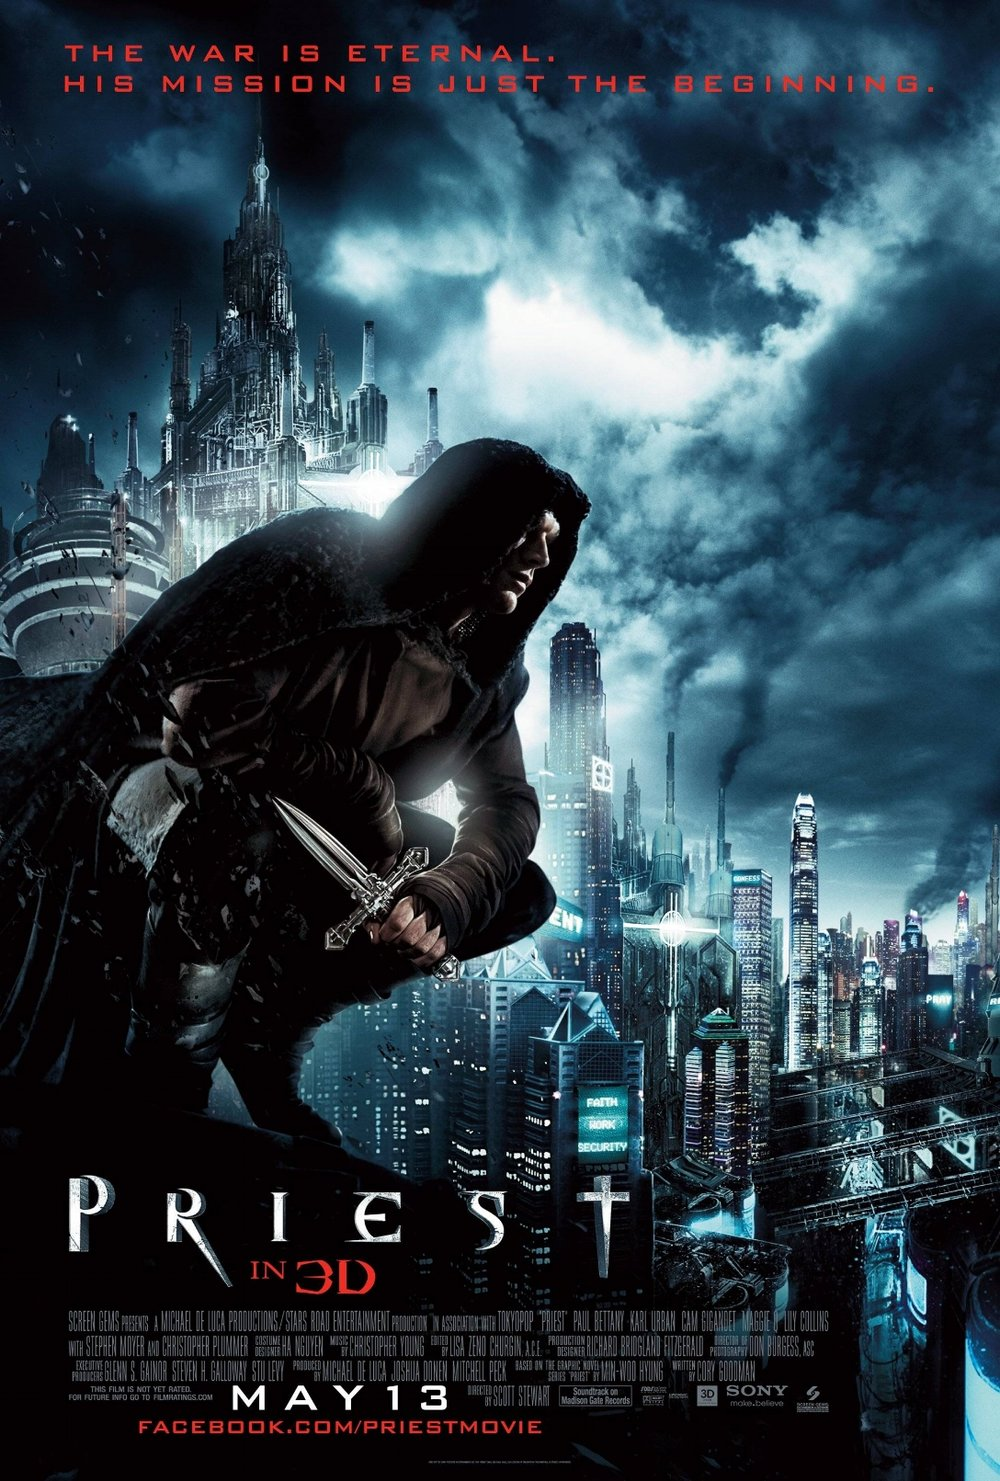 Priest (Sony Pictures)